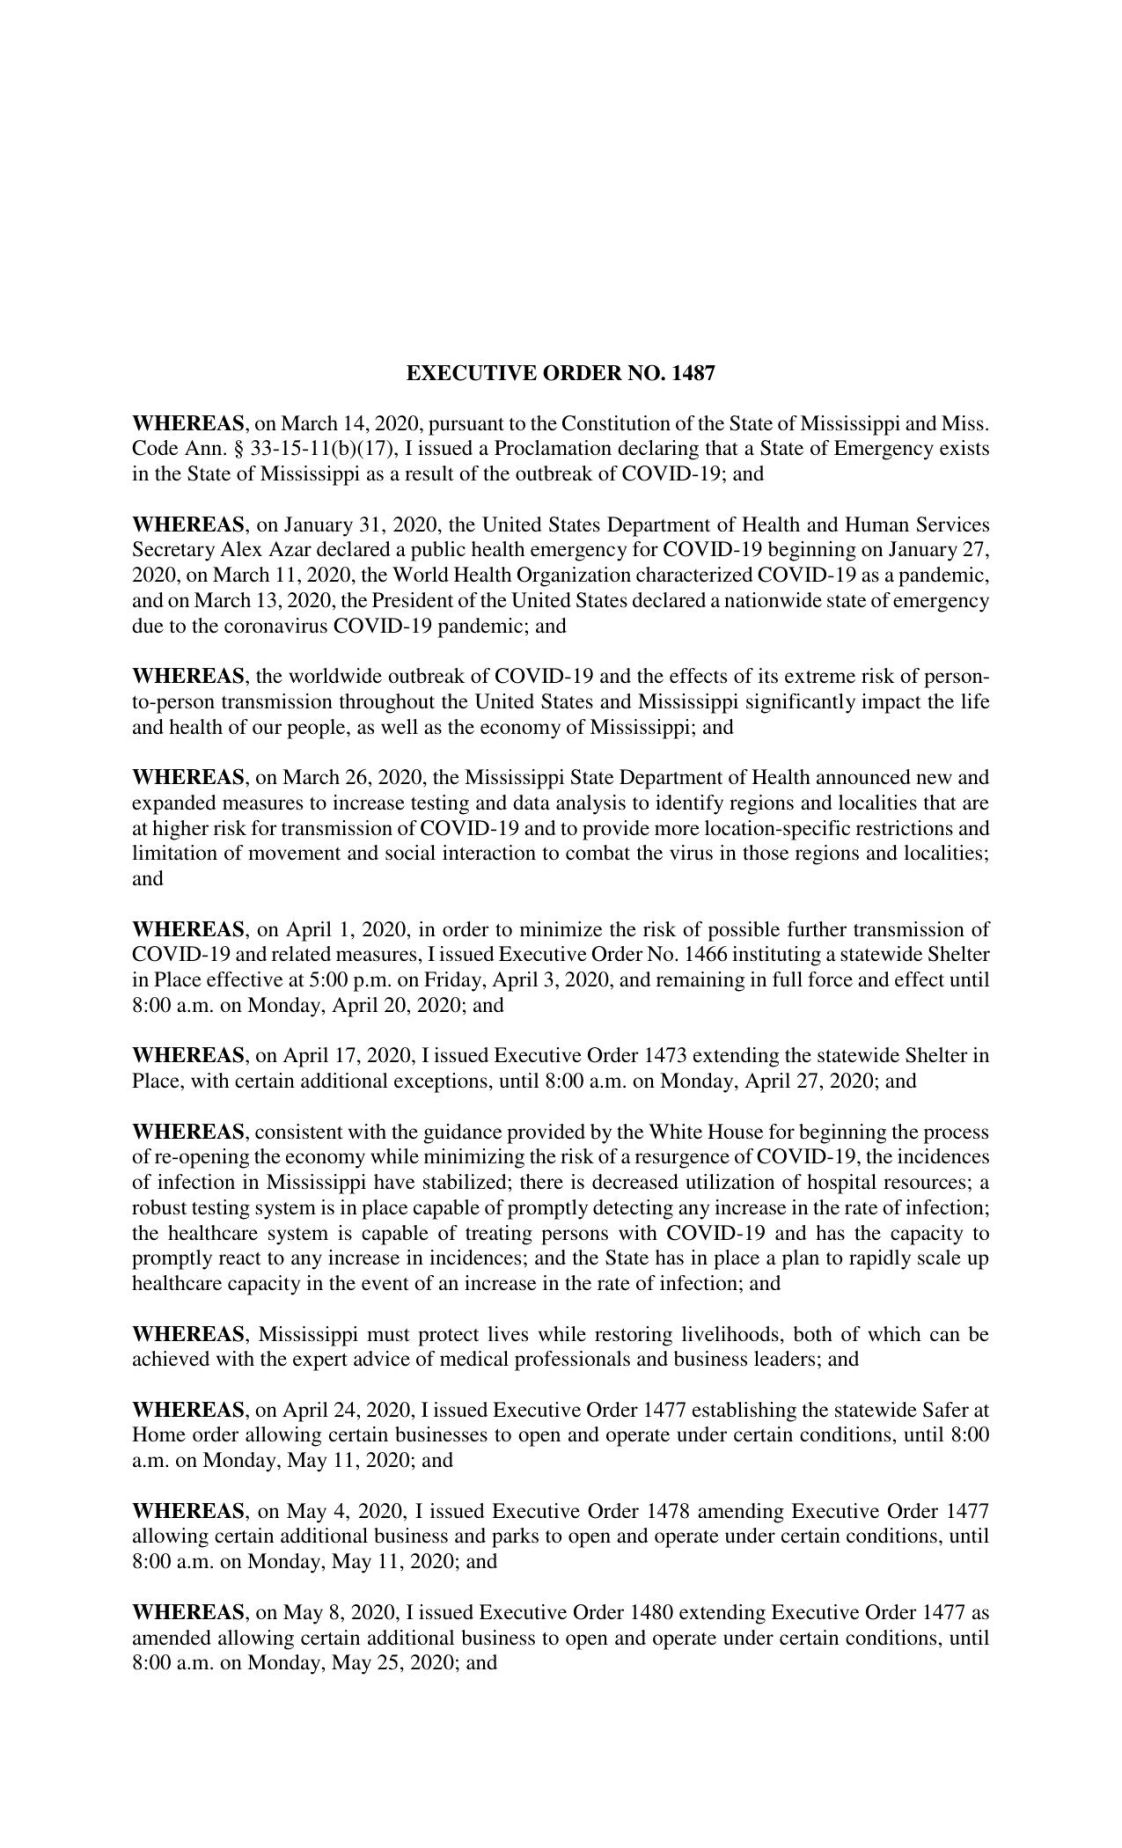 Mississippi Executive Order issued May 22